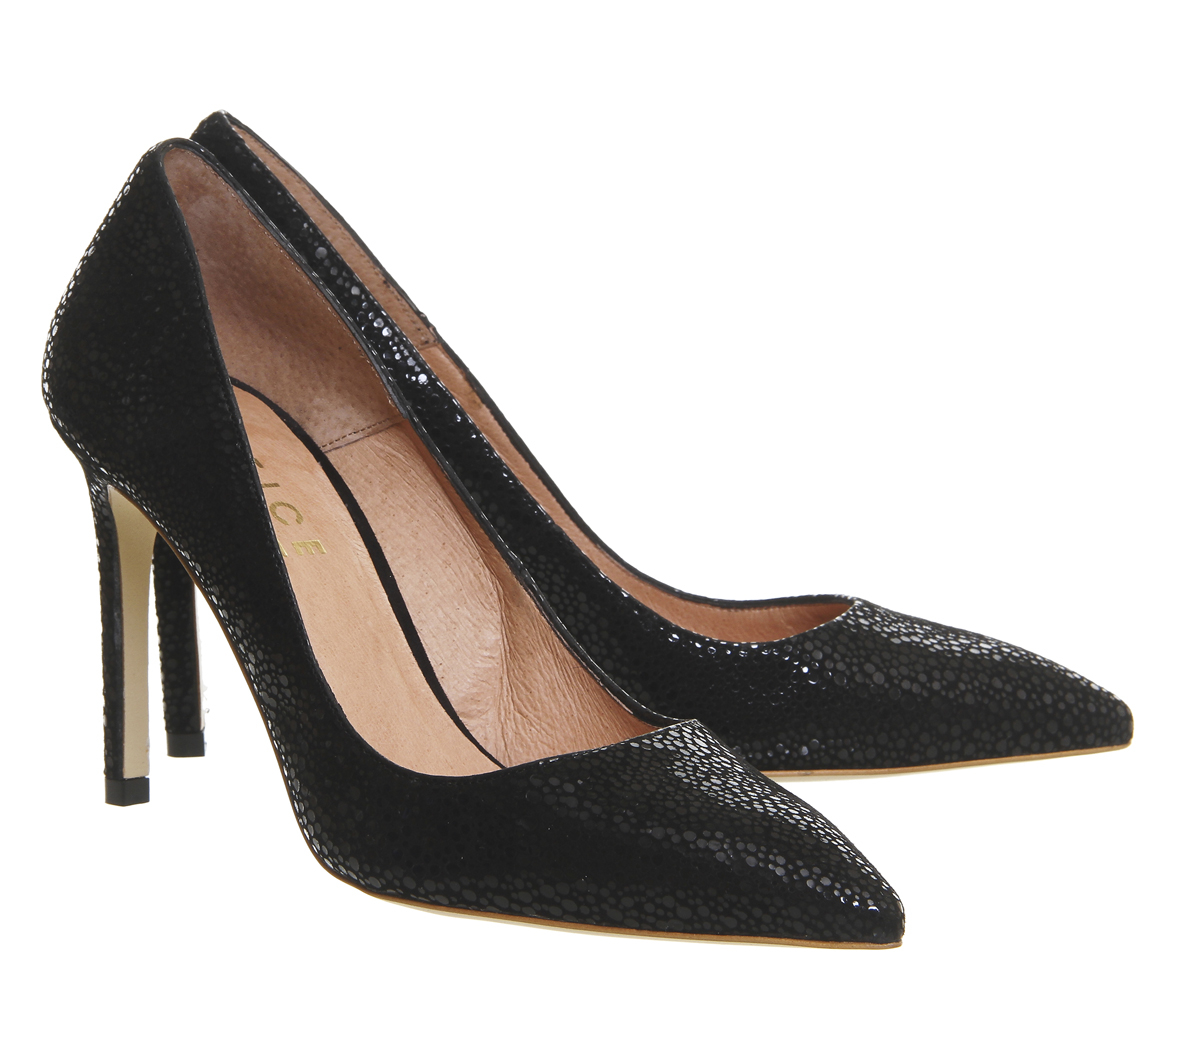 office playful point court heels in black lyst